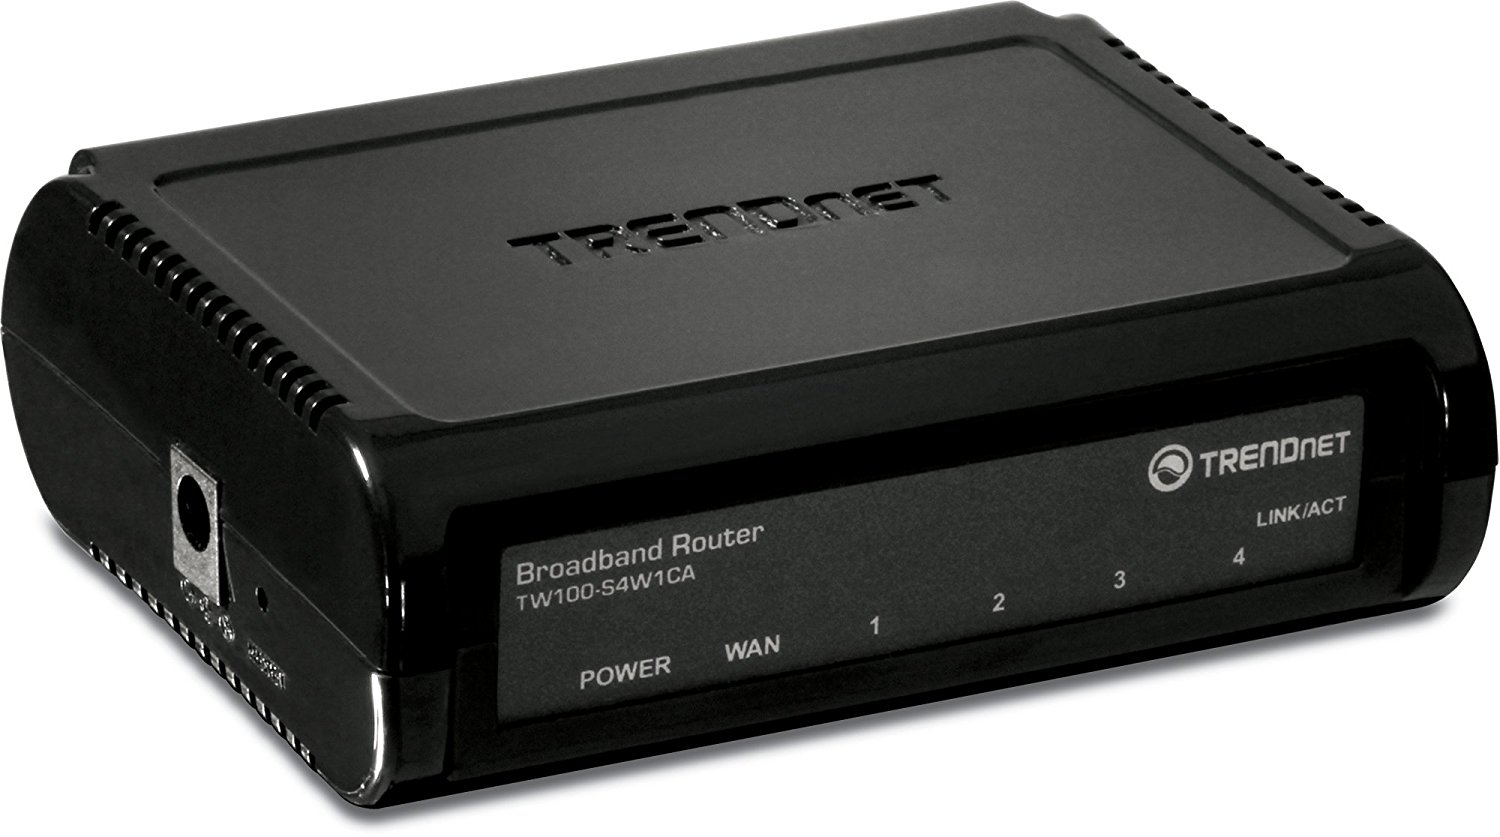 4-Port Broadband Router, 4 x 10 100 ports, Instant Recognizing, Plug & Play, Firewall Protection, TW100-S4W1CA, Ship... by TRENDnet